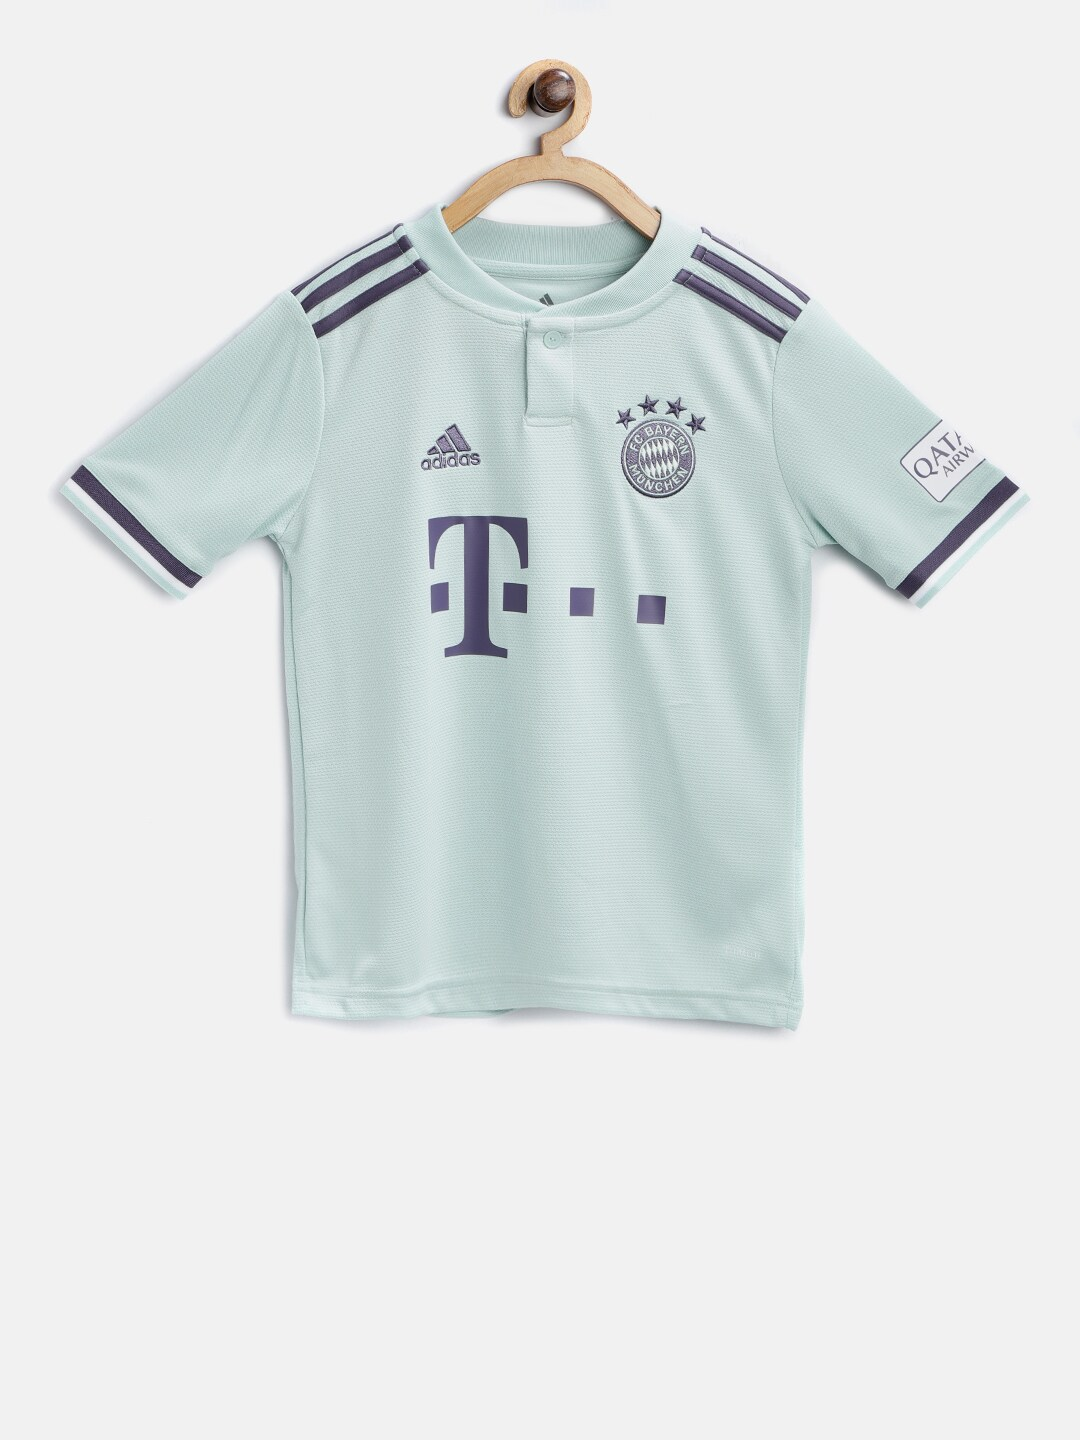 500710c51 Adidas Jersey - Buy Adidas Jersey online in India